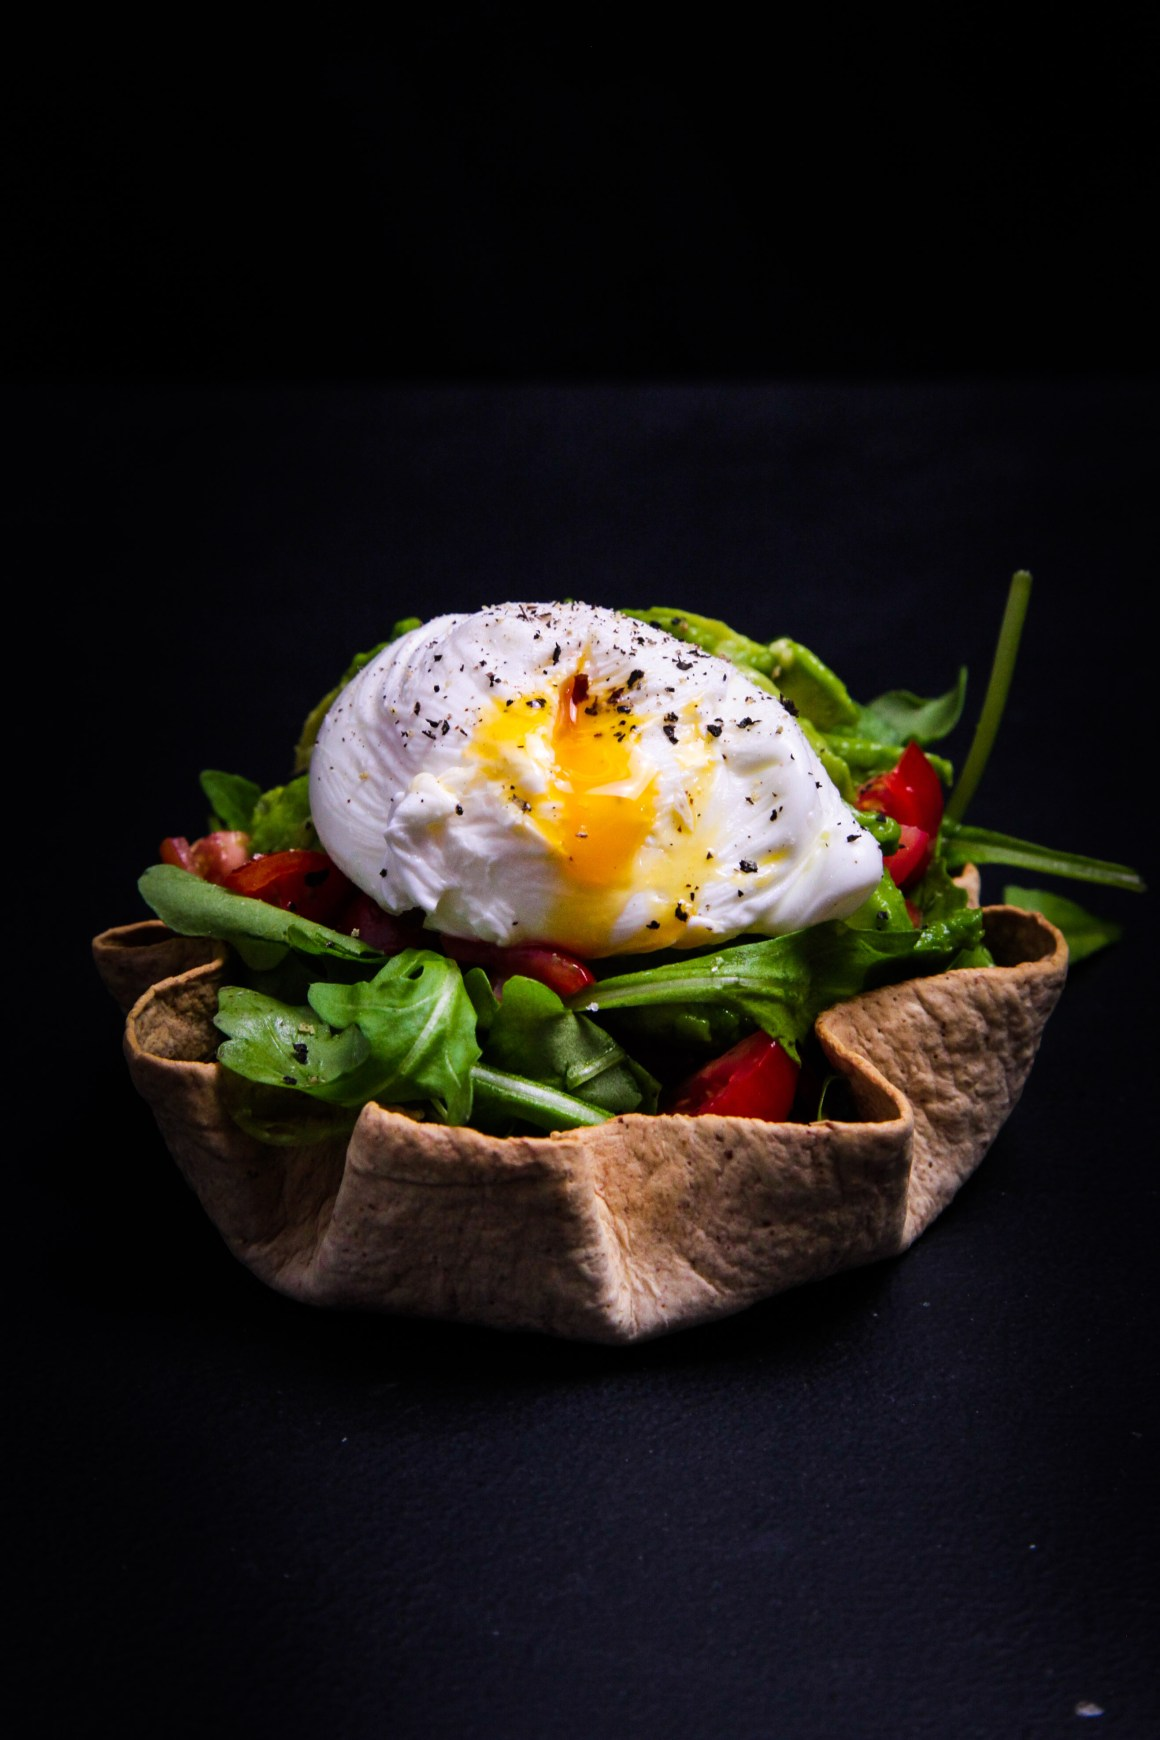 Poached Egg Tortilla Nests with Avocado, Rocket and Tomatoes